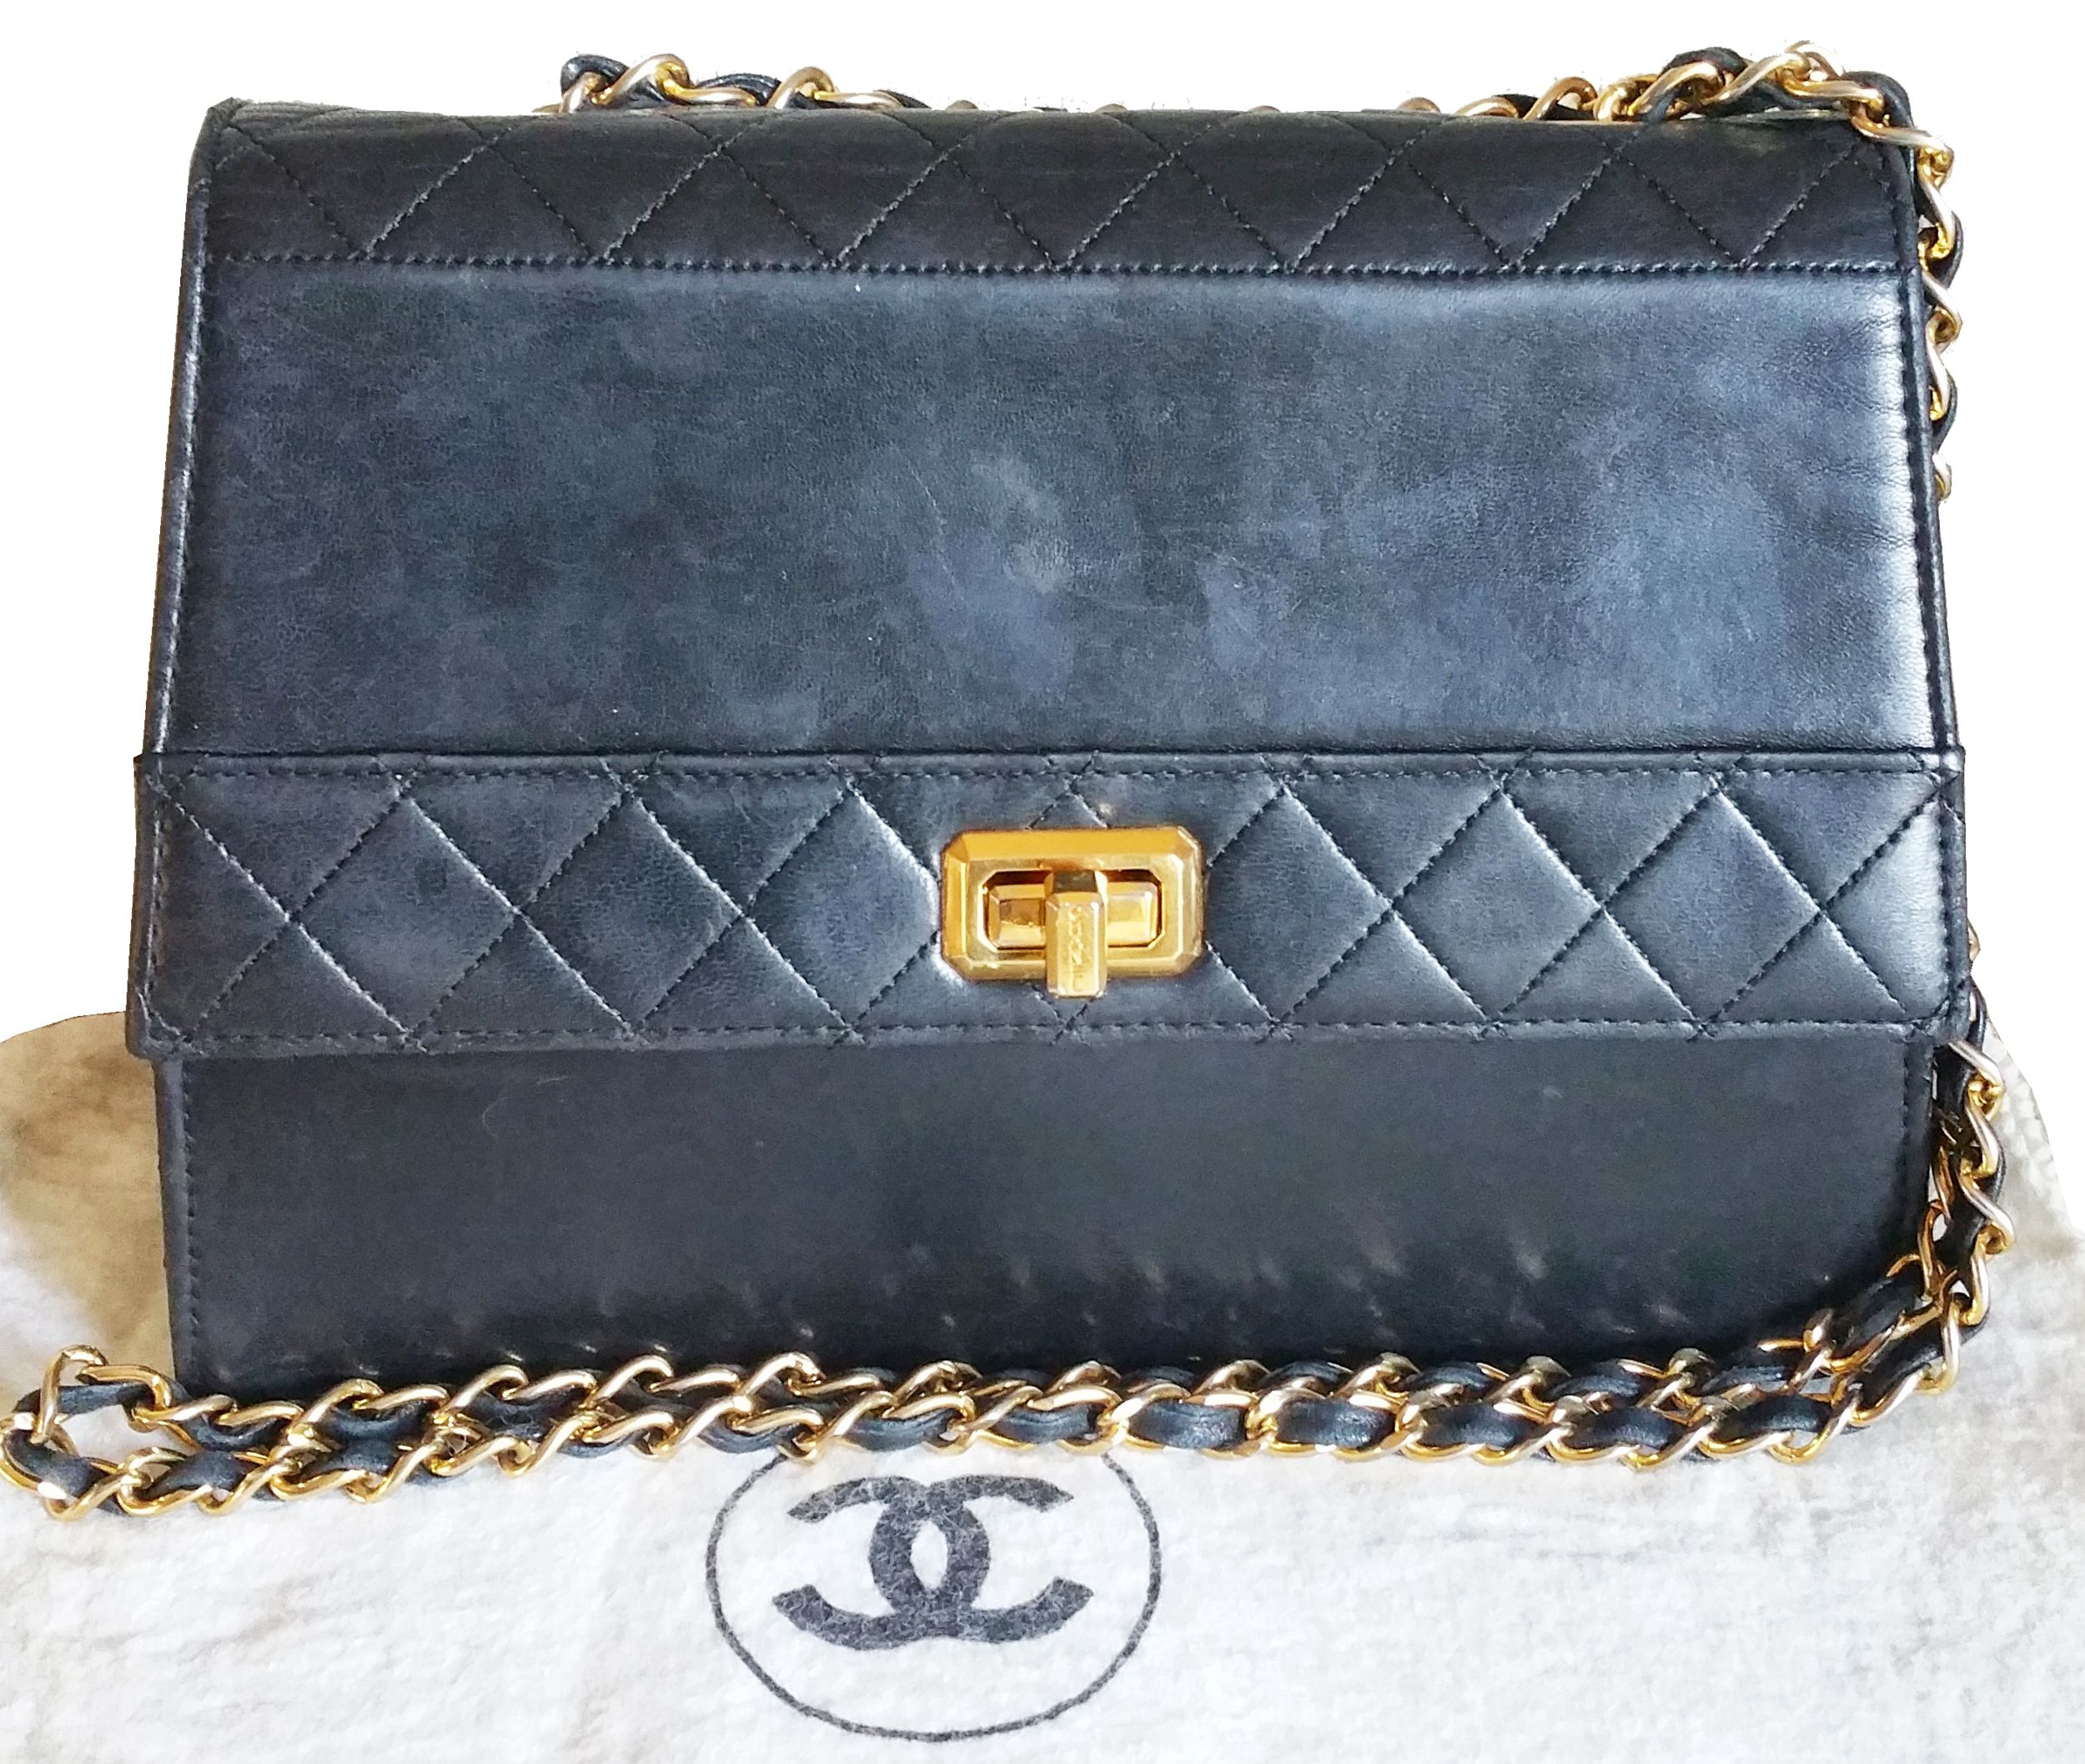 70f457cd5e10 SOLD Authentic Vintage Rare Chanel Lambskin Quilted Chain Bag * 158xxxx *  Made in France * Comes with dustbag -Approximately 9